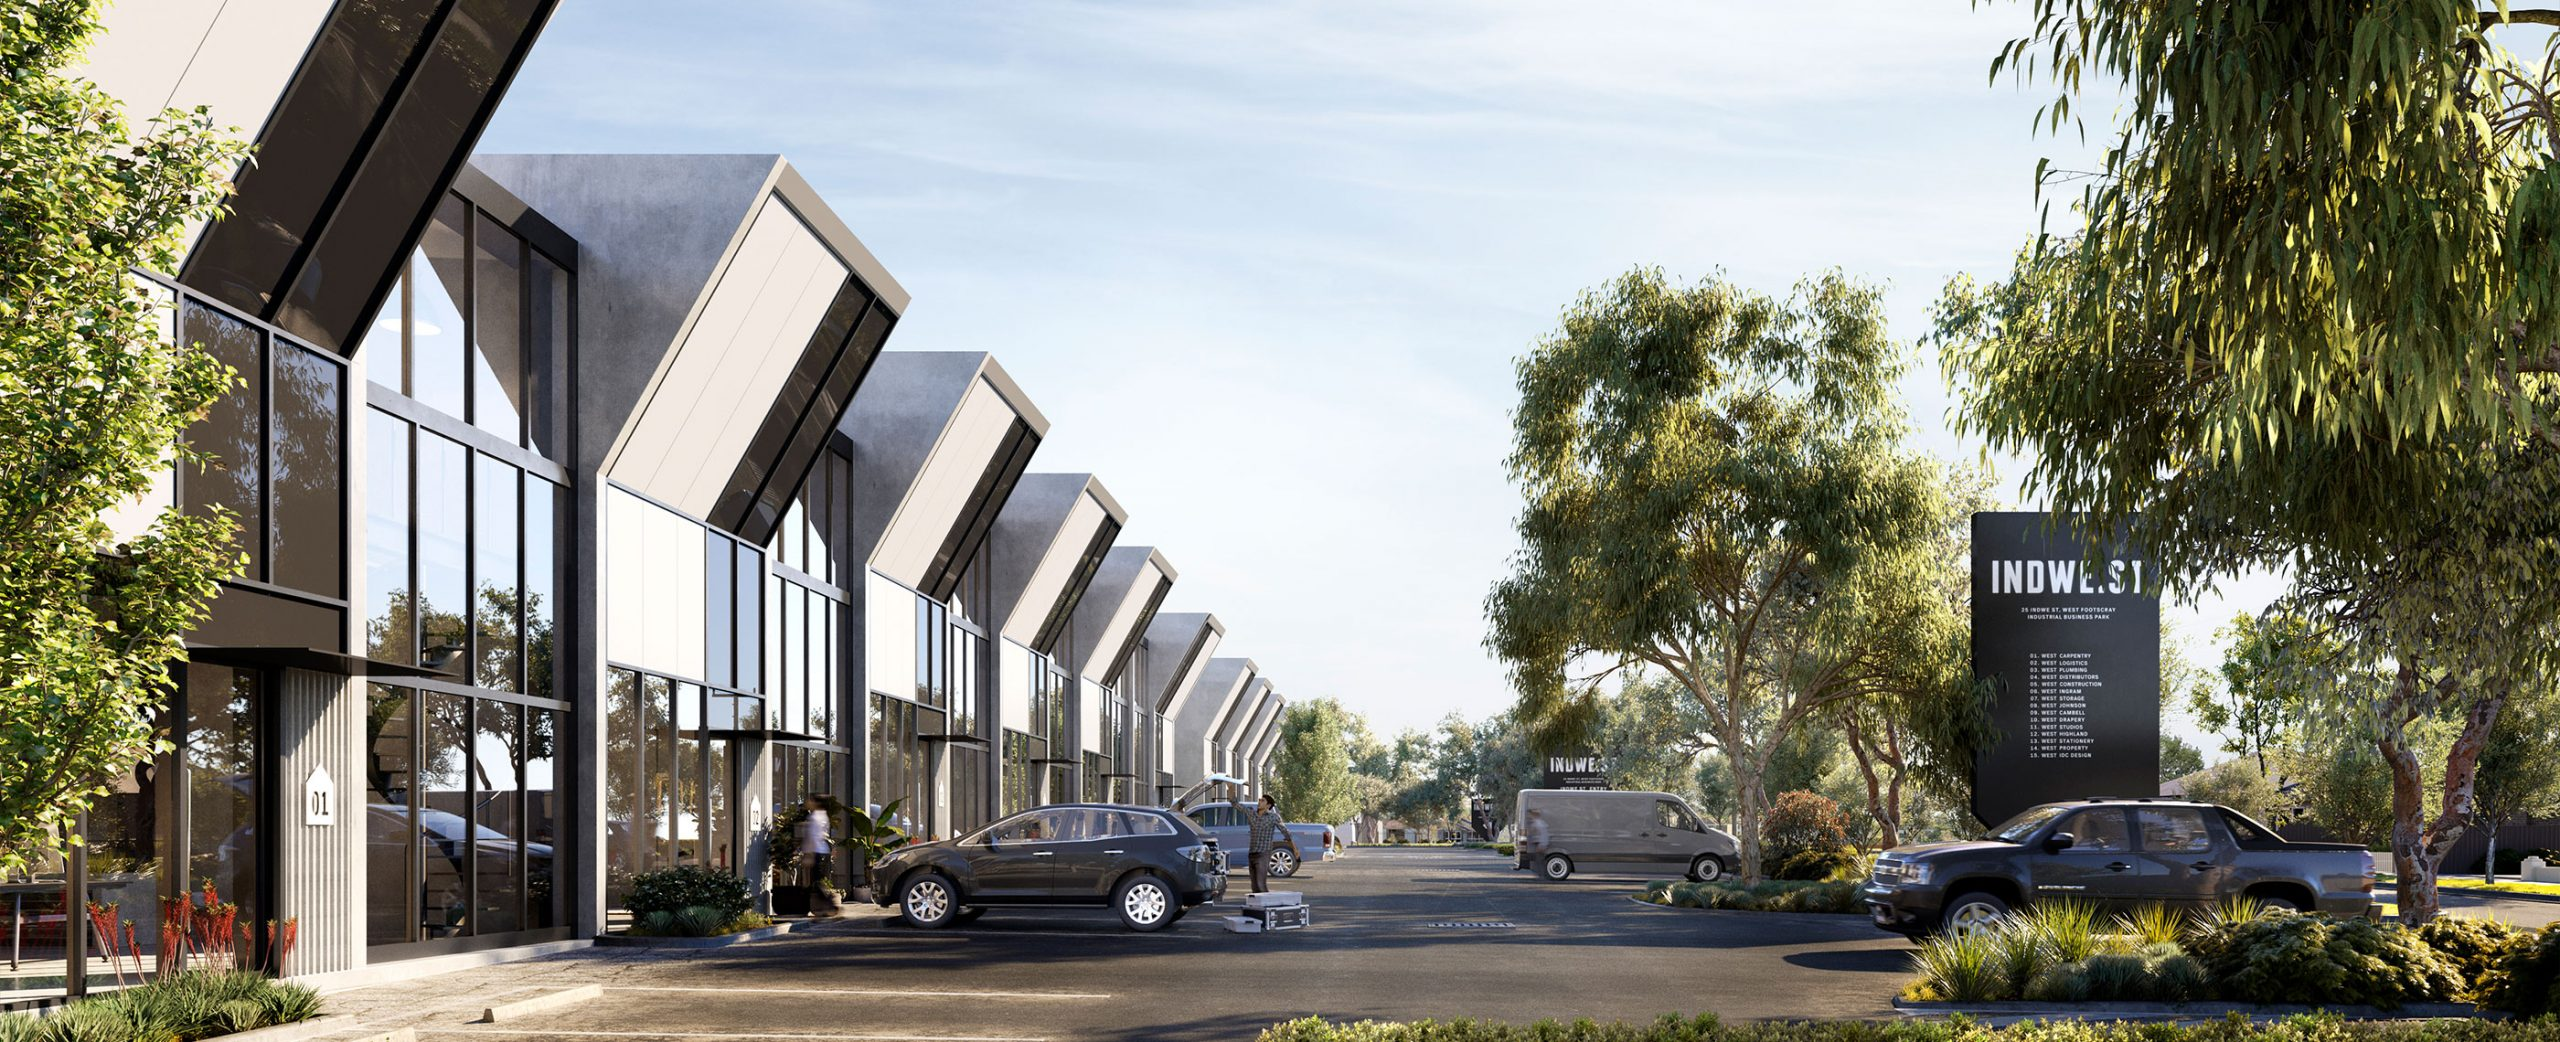 Indwe Park Rothelowman Architecture project